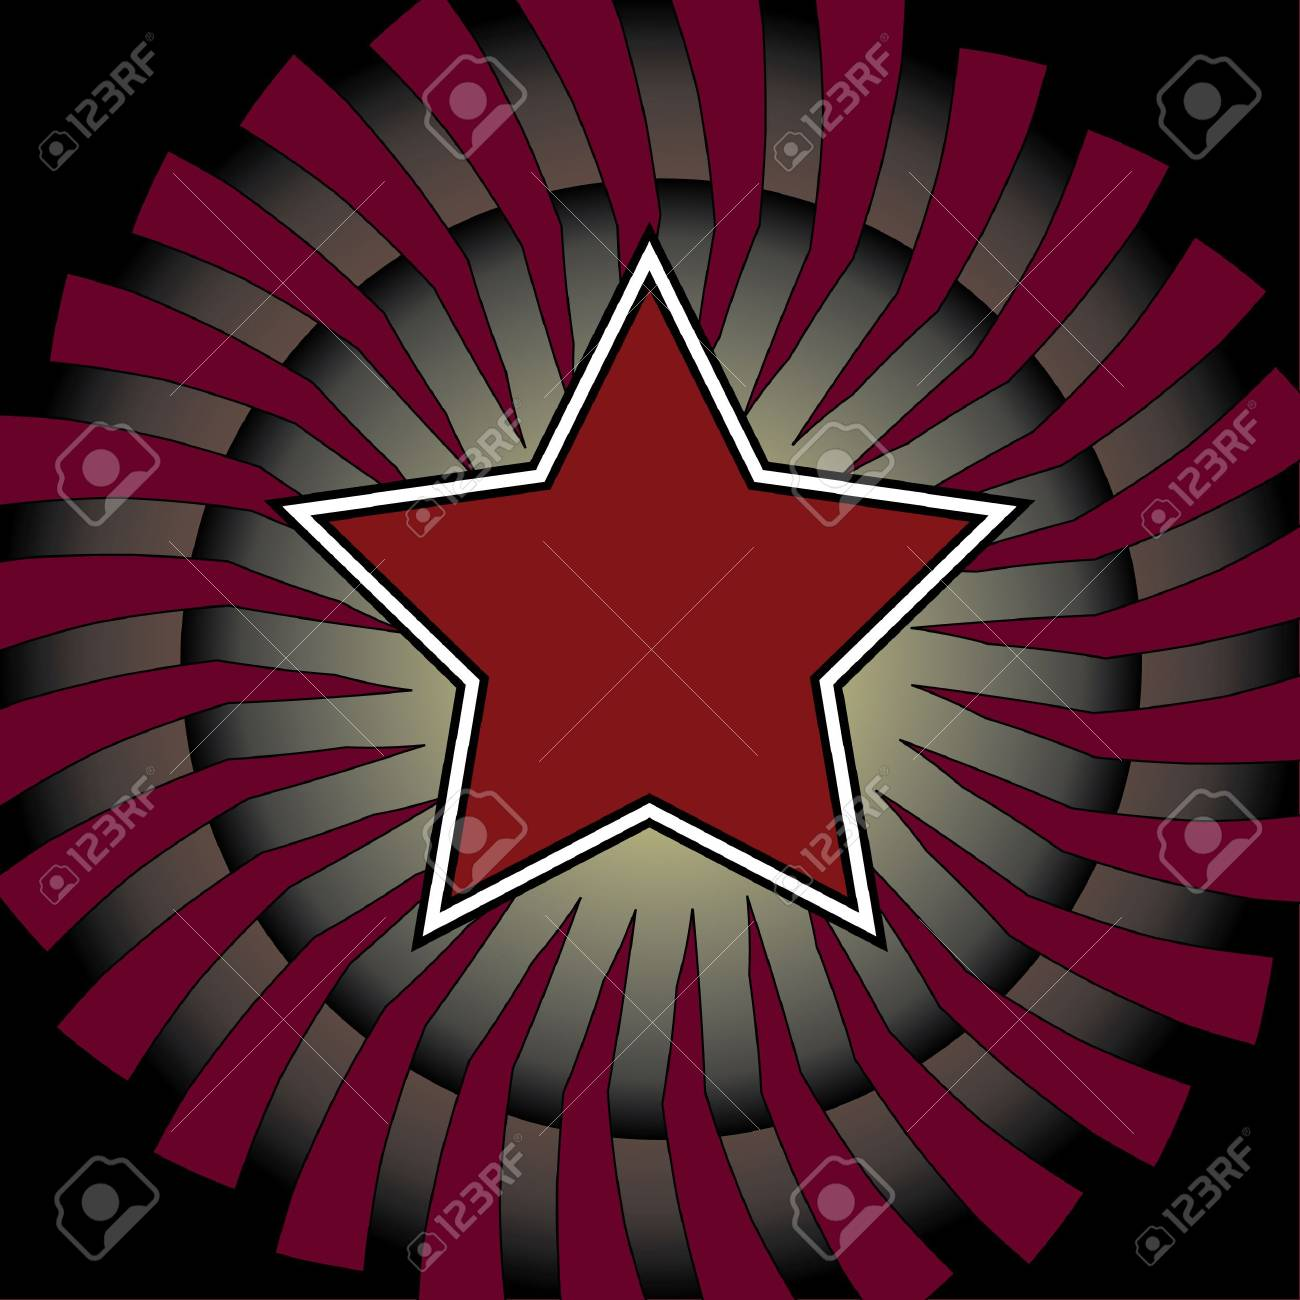 A spiral and star based square background design Stock Photo - 4499614